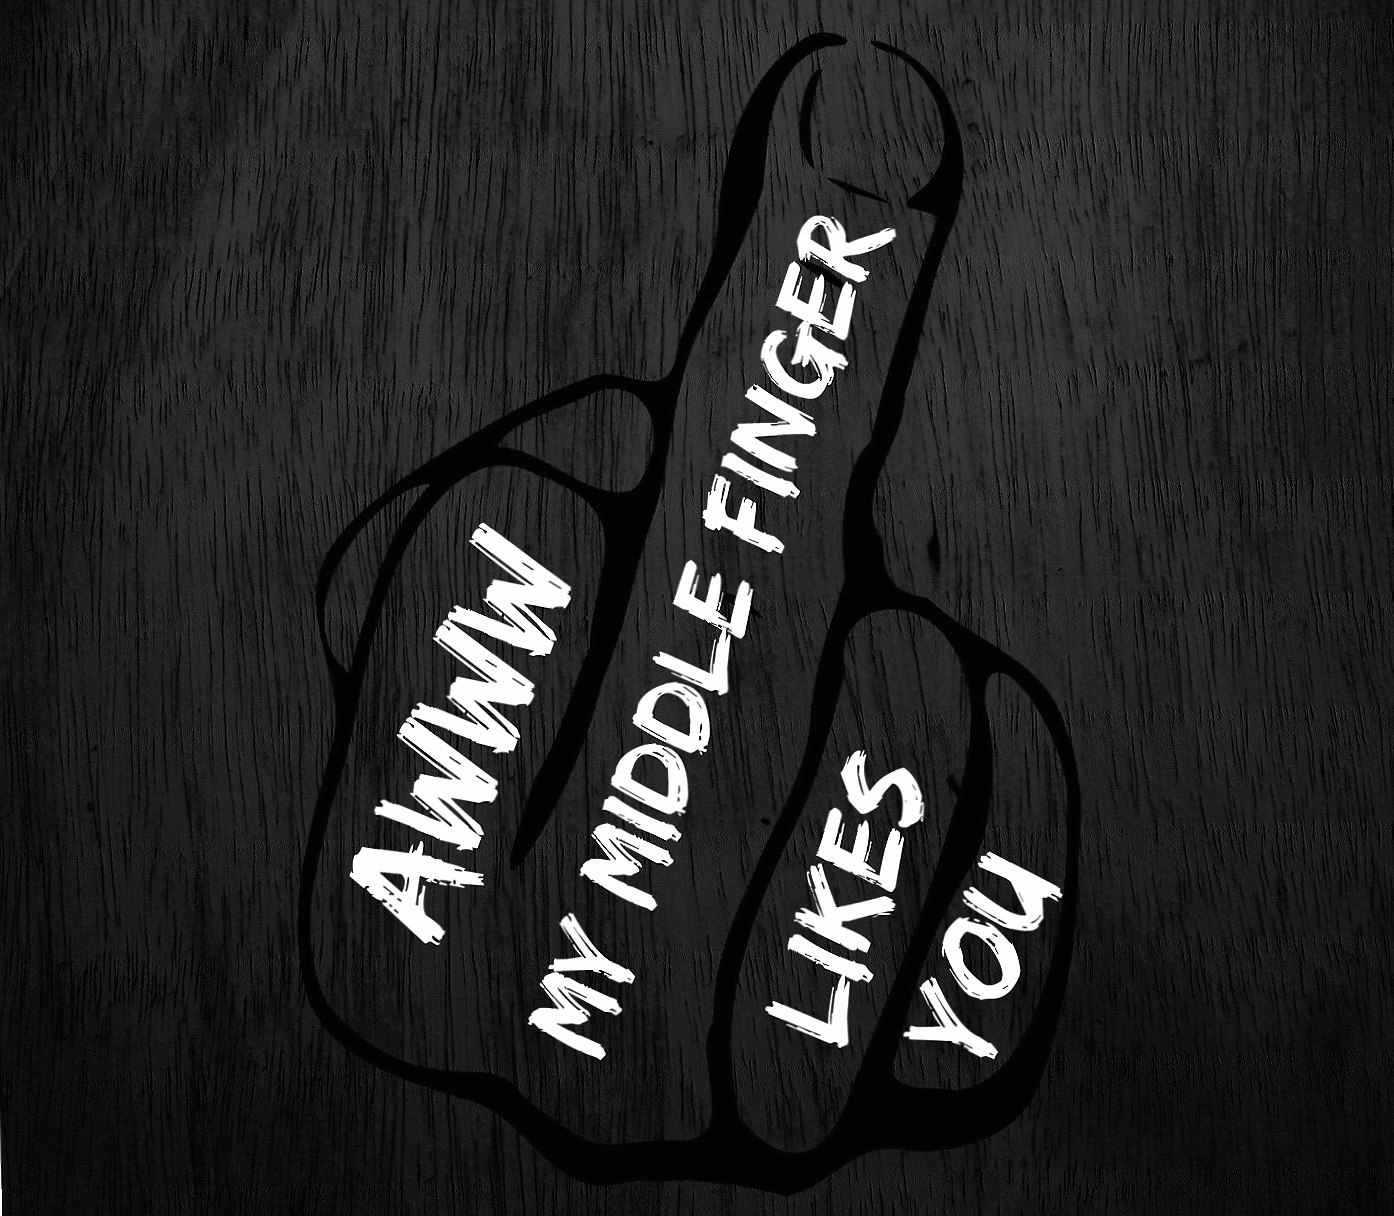 Middle Finger wallpapers HD quality